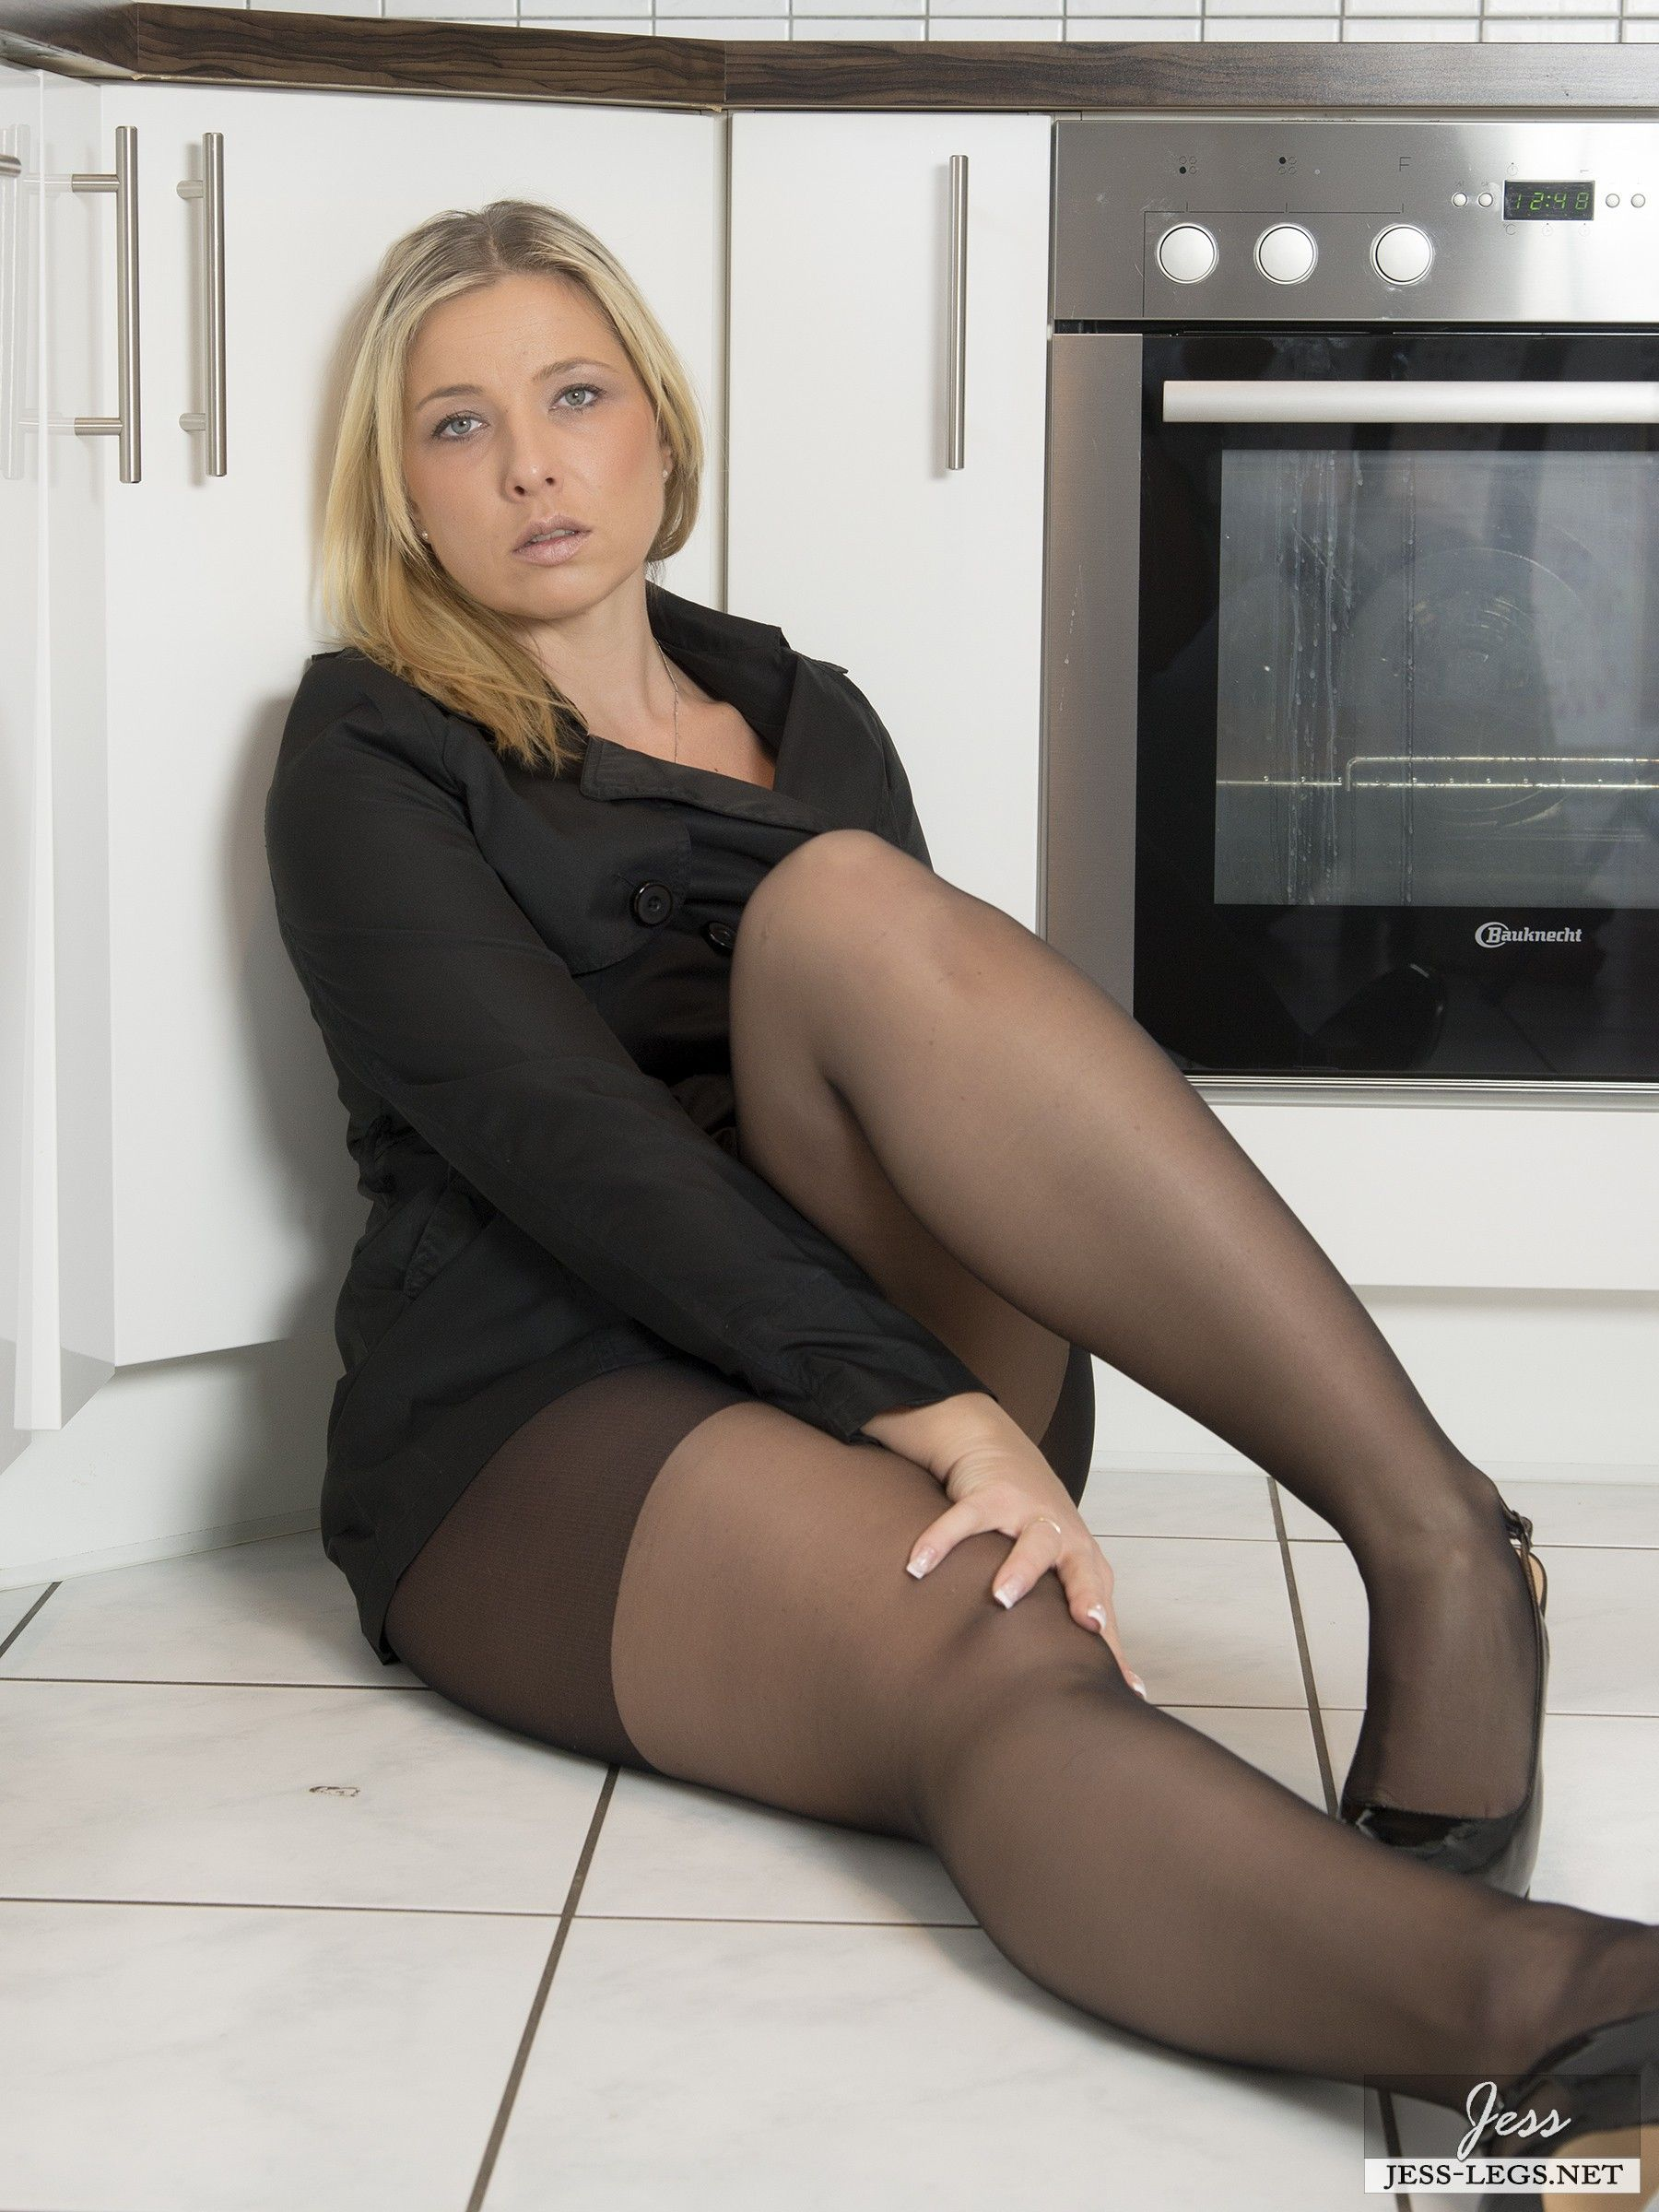 Amateur mom nude kitchen